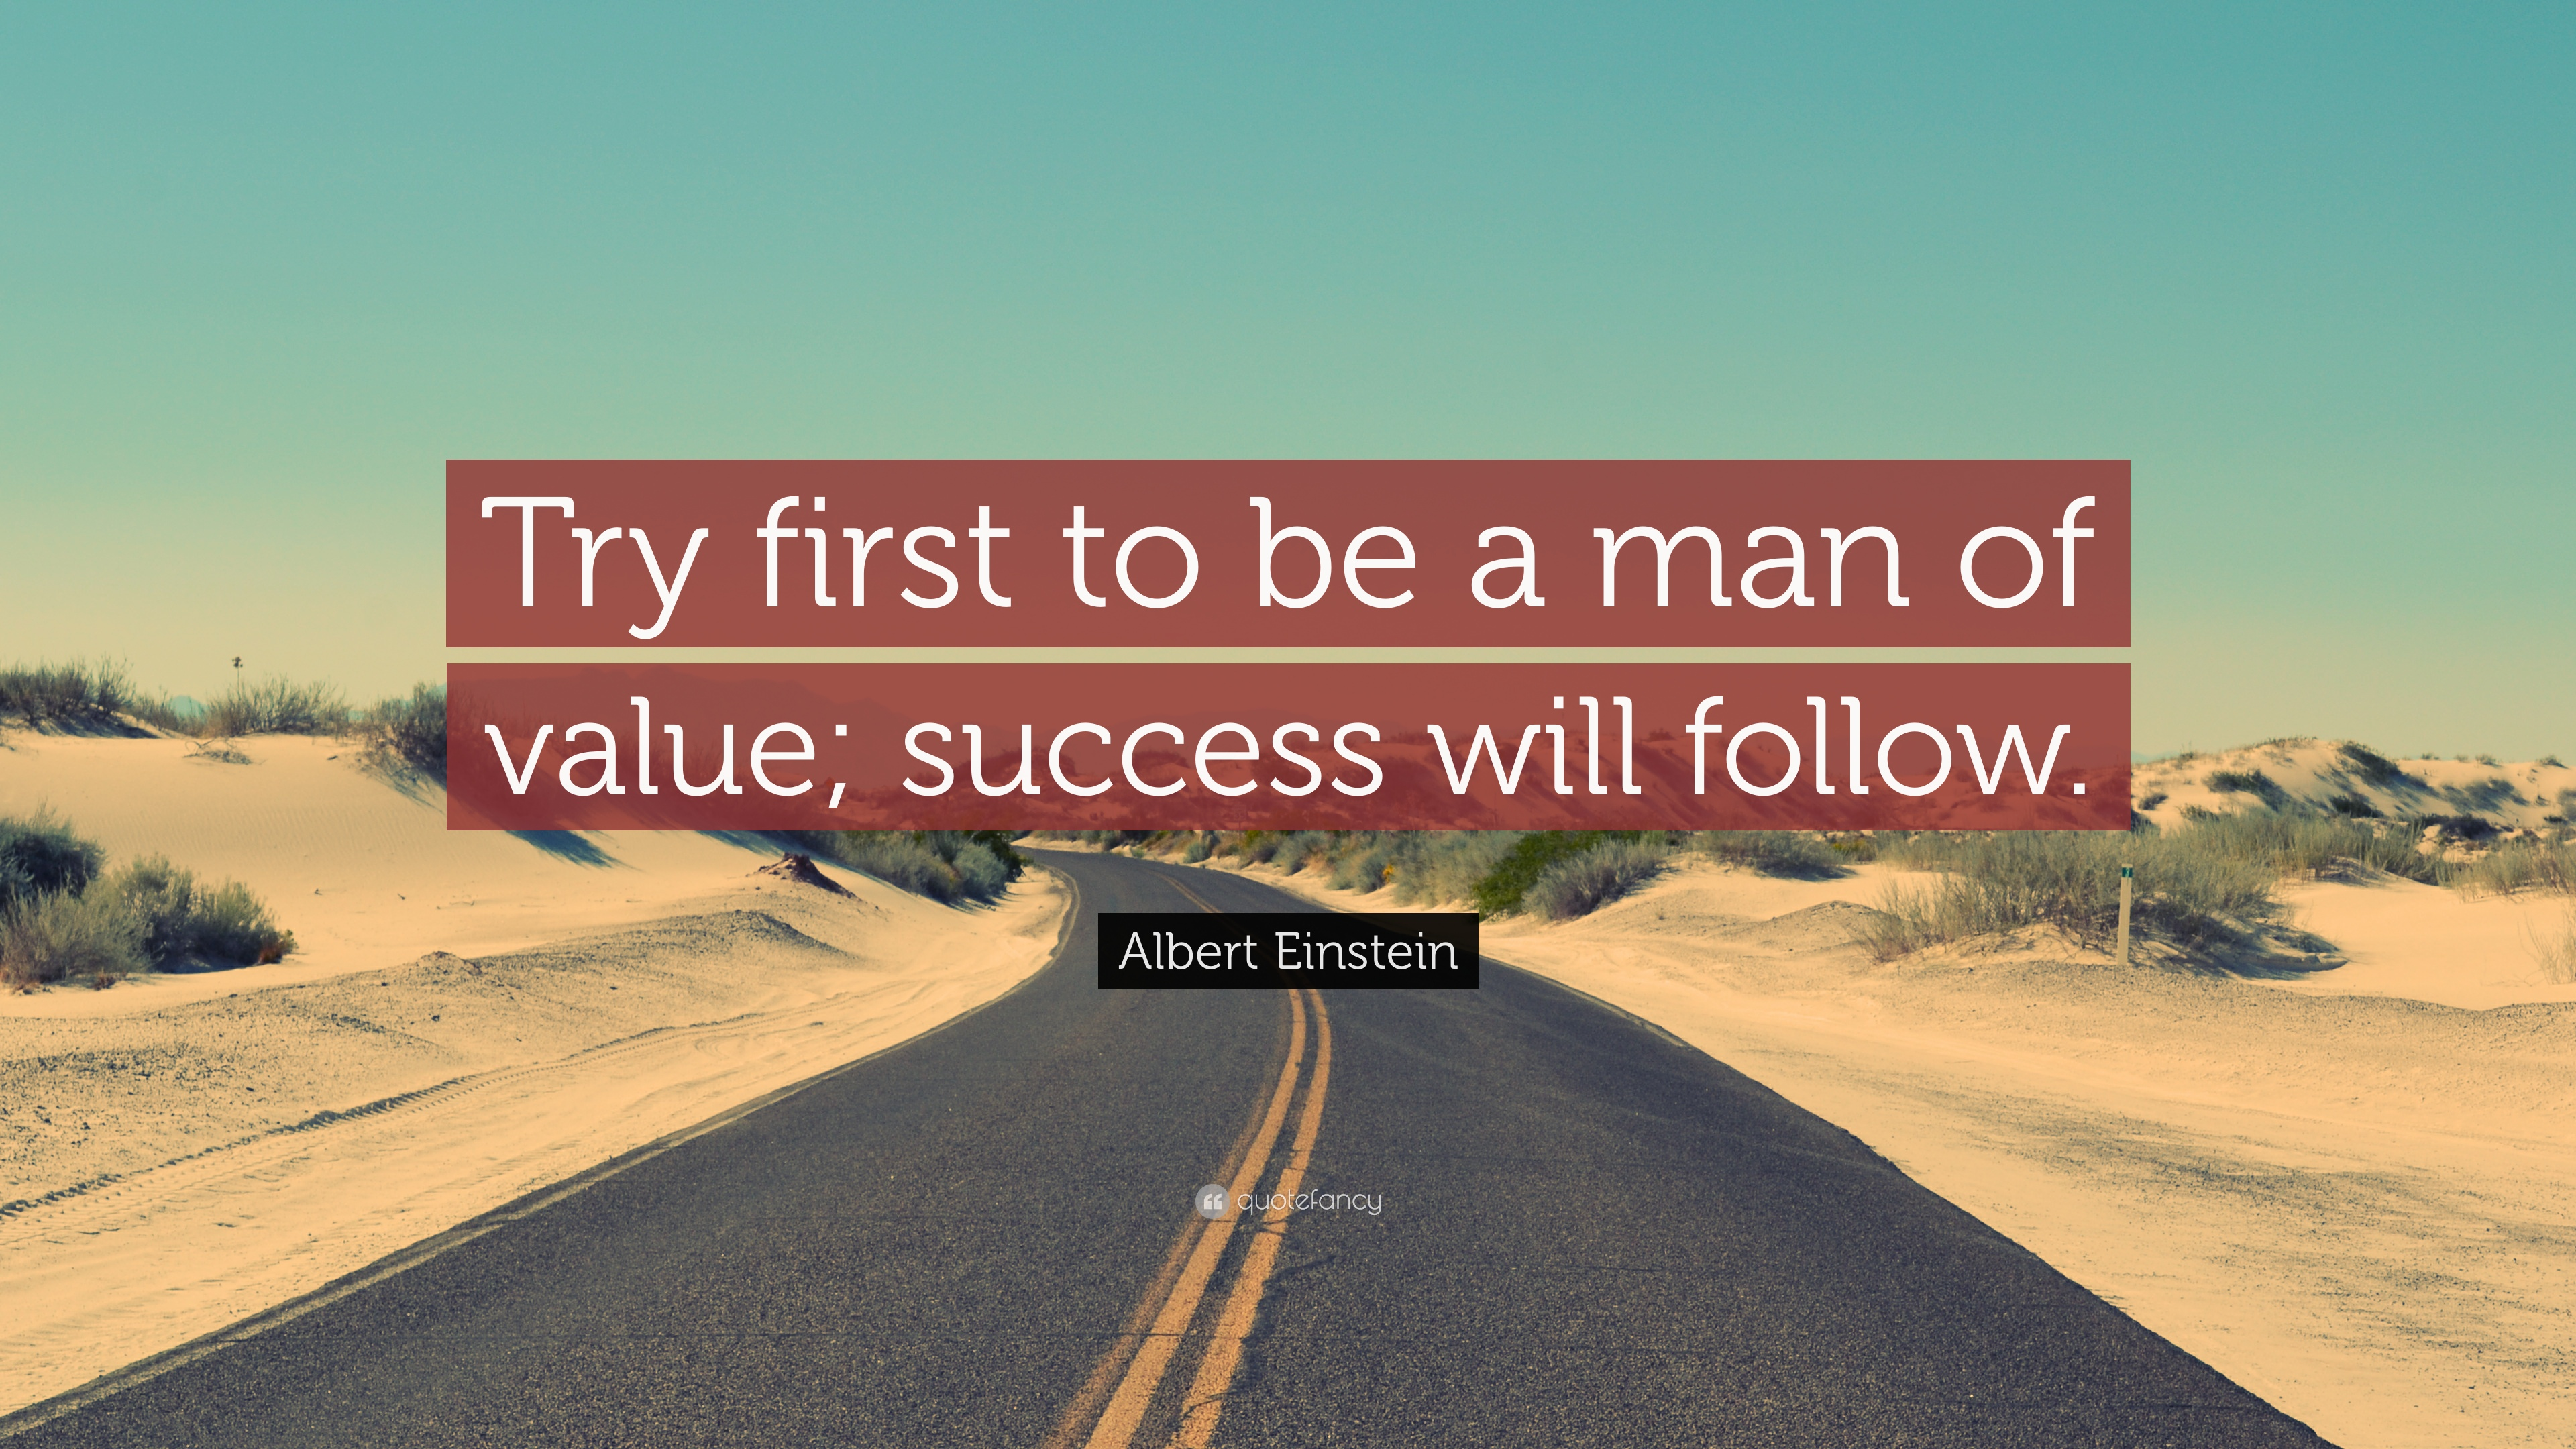 Albert Einstein Quote Try First To Be A Man Of Value Success Will